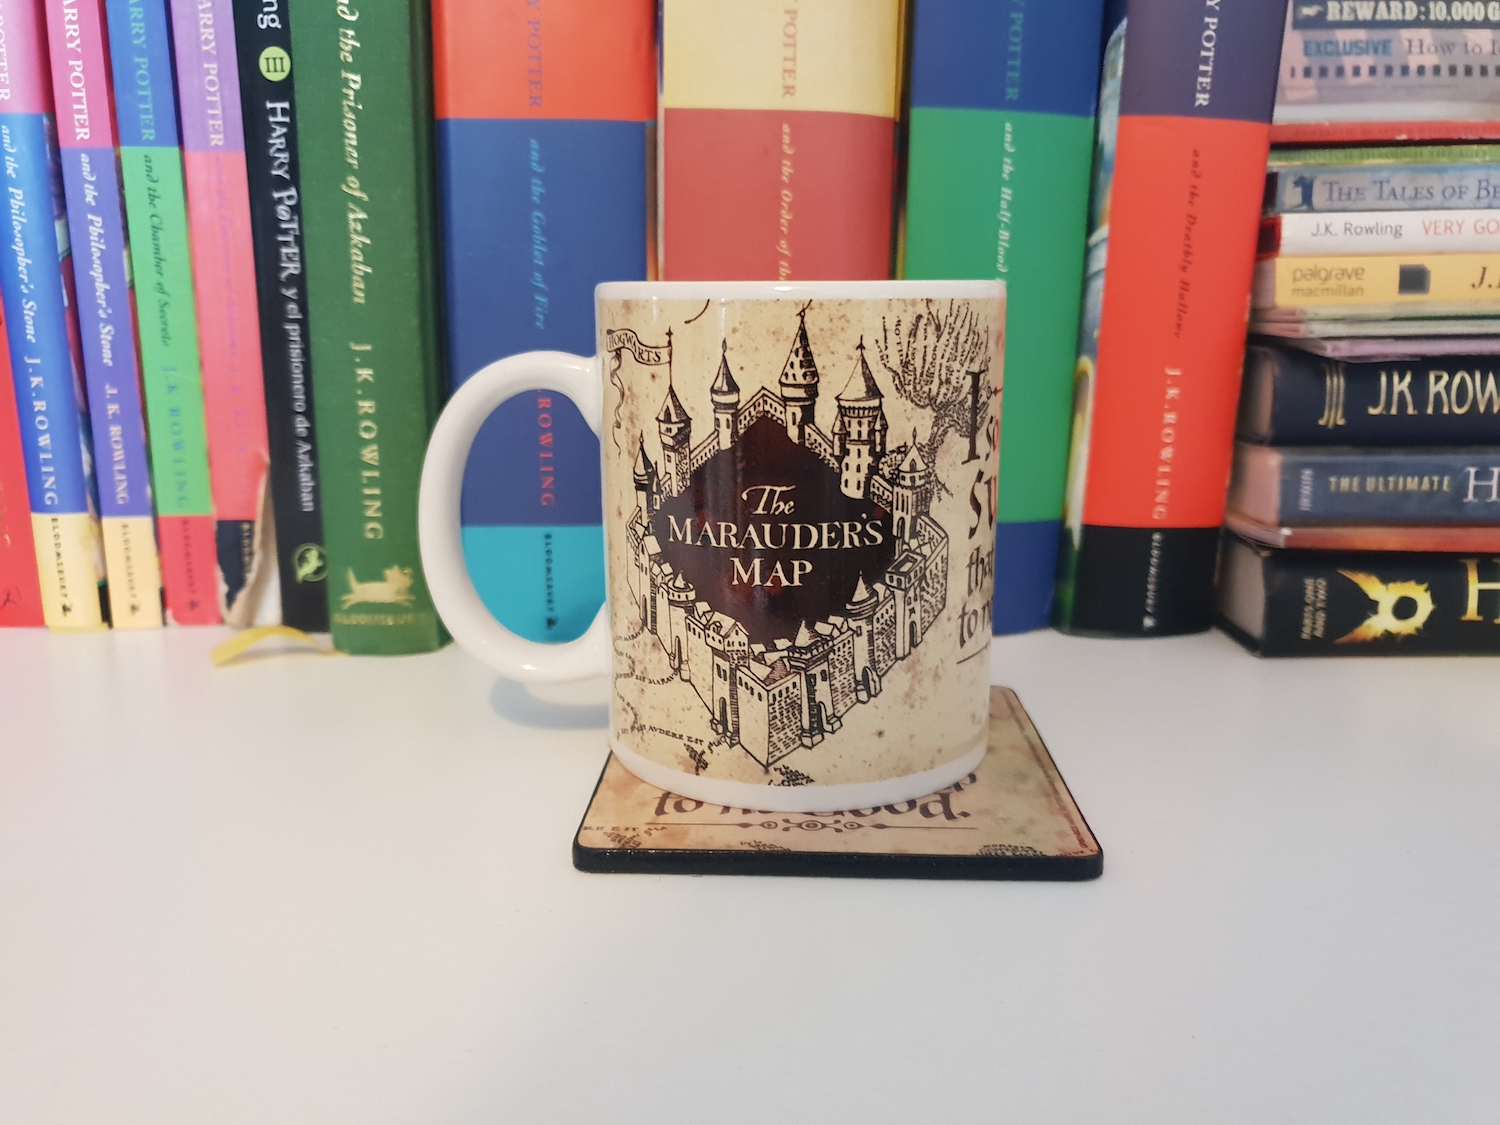 Another item in this box was a Marauder's Map mug.